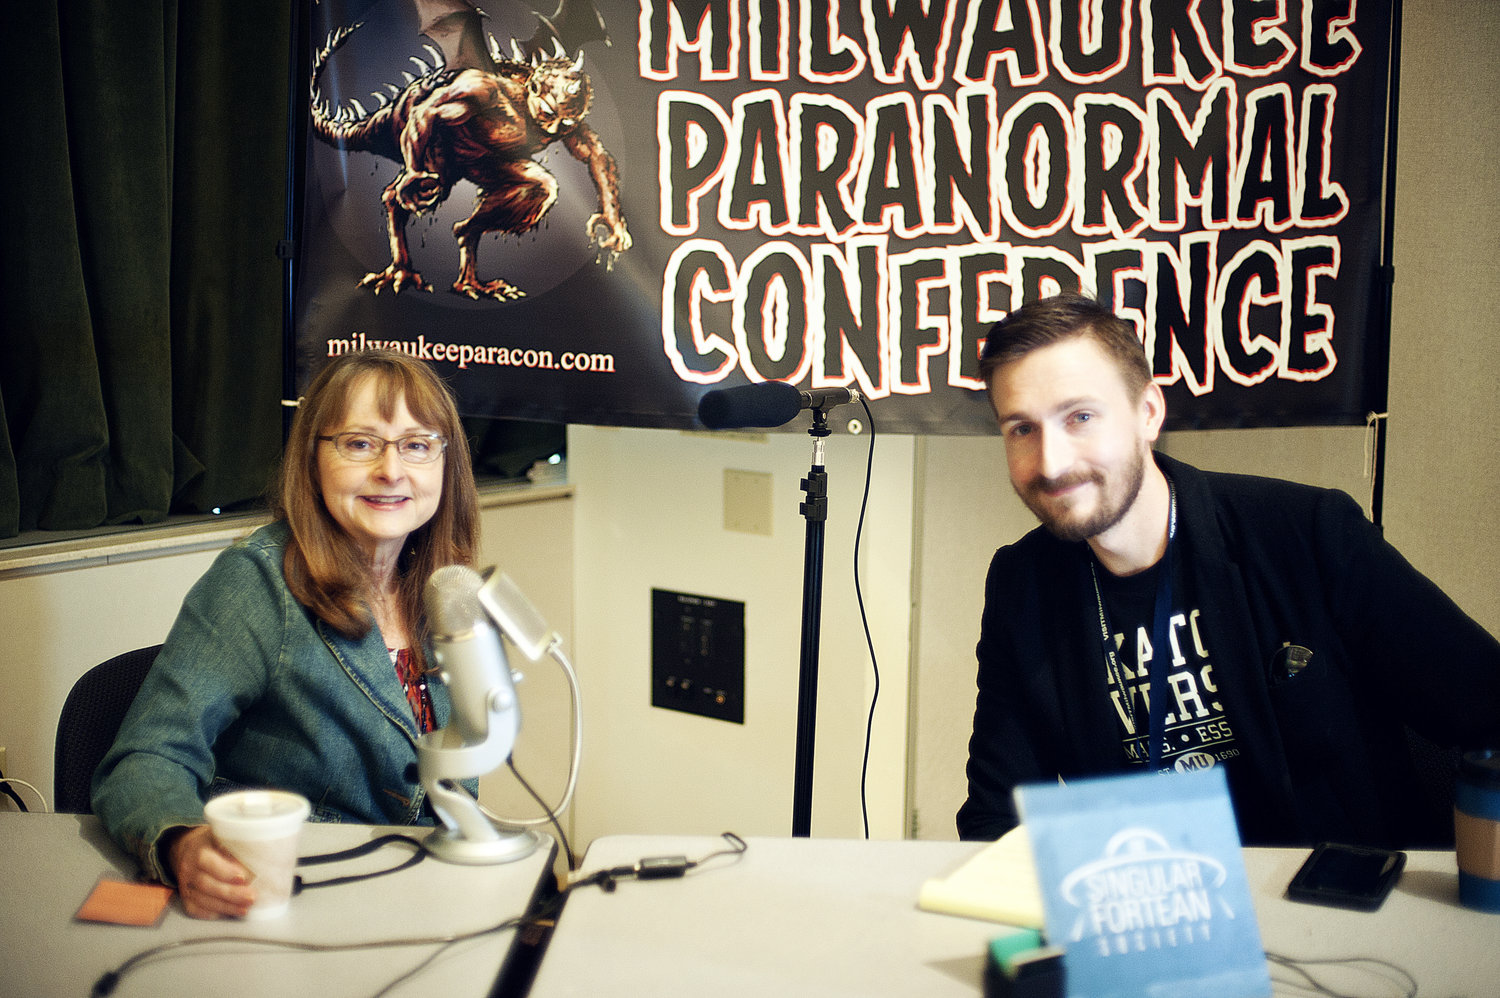 Linda Godfrey (left) with The Singular Fortean Society's Tobias Wayland at last year's Milwaukee Paranormal Conference.